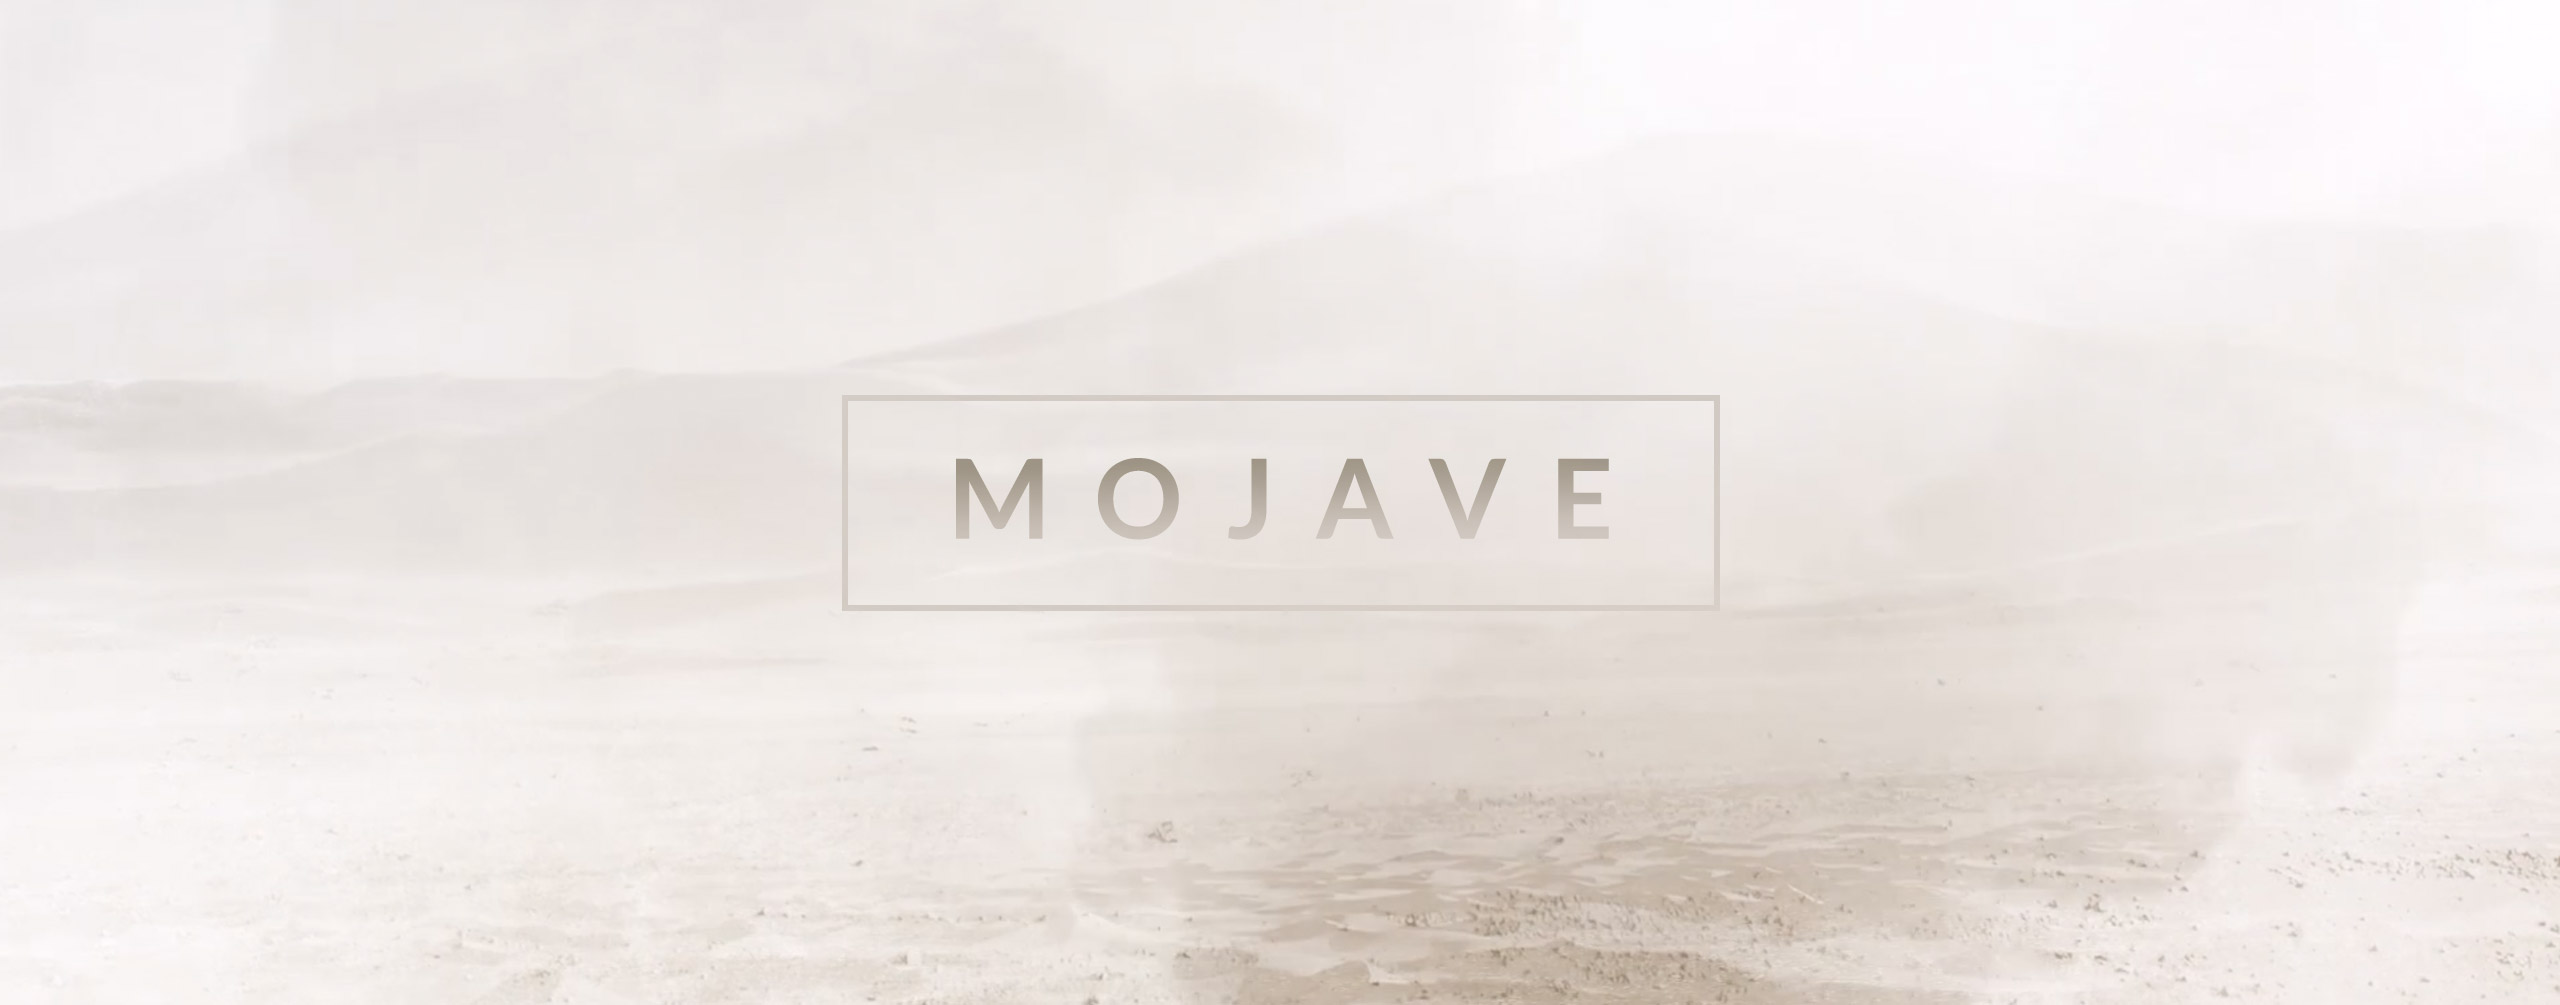 Mojave - Dust Video Effects